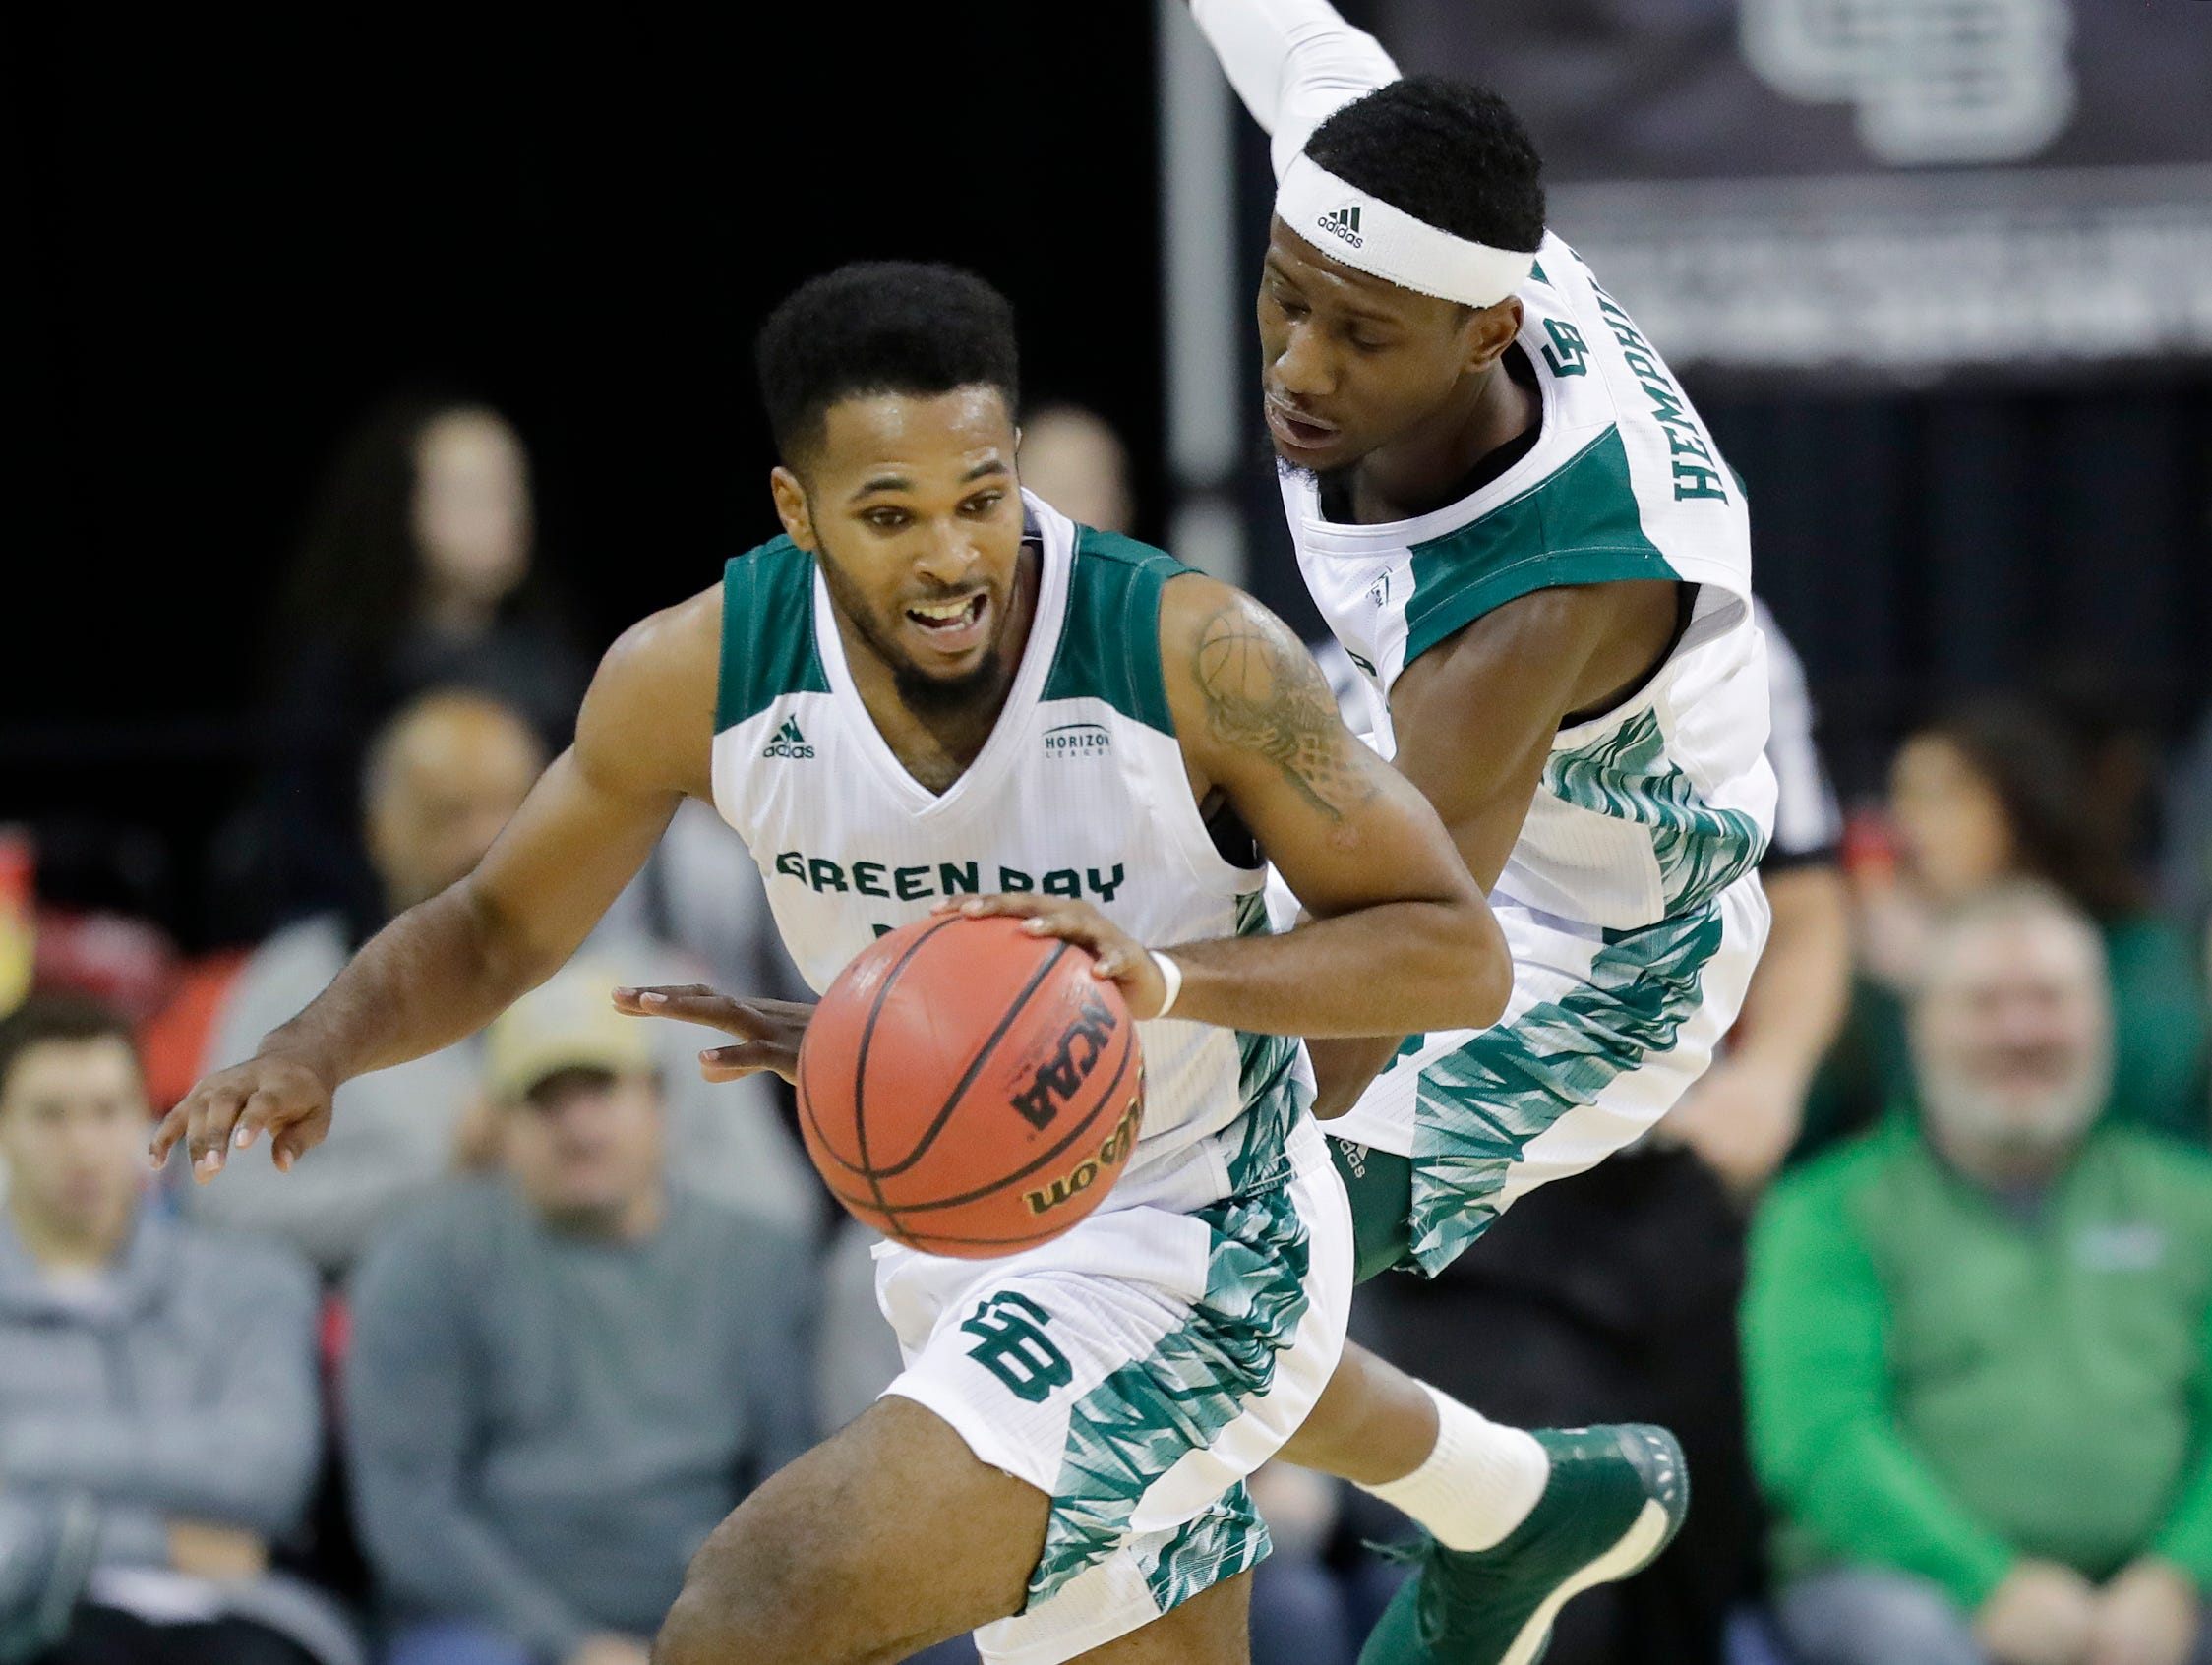 Green Bay Phoenix guard JayQuan McCloud (11) gets a steal against the Belmont Bruins in a NCAA basketball game at the Resch Center on Saturday, December 1, 2018 in Ashwaubenon, Wis.